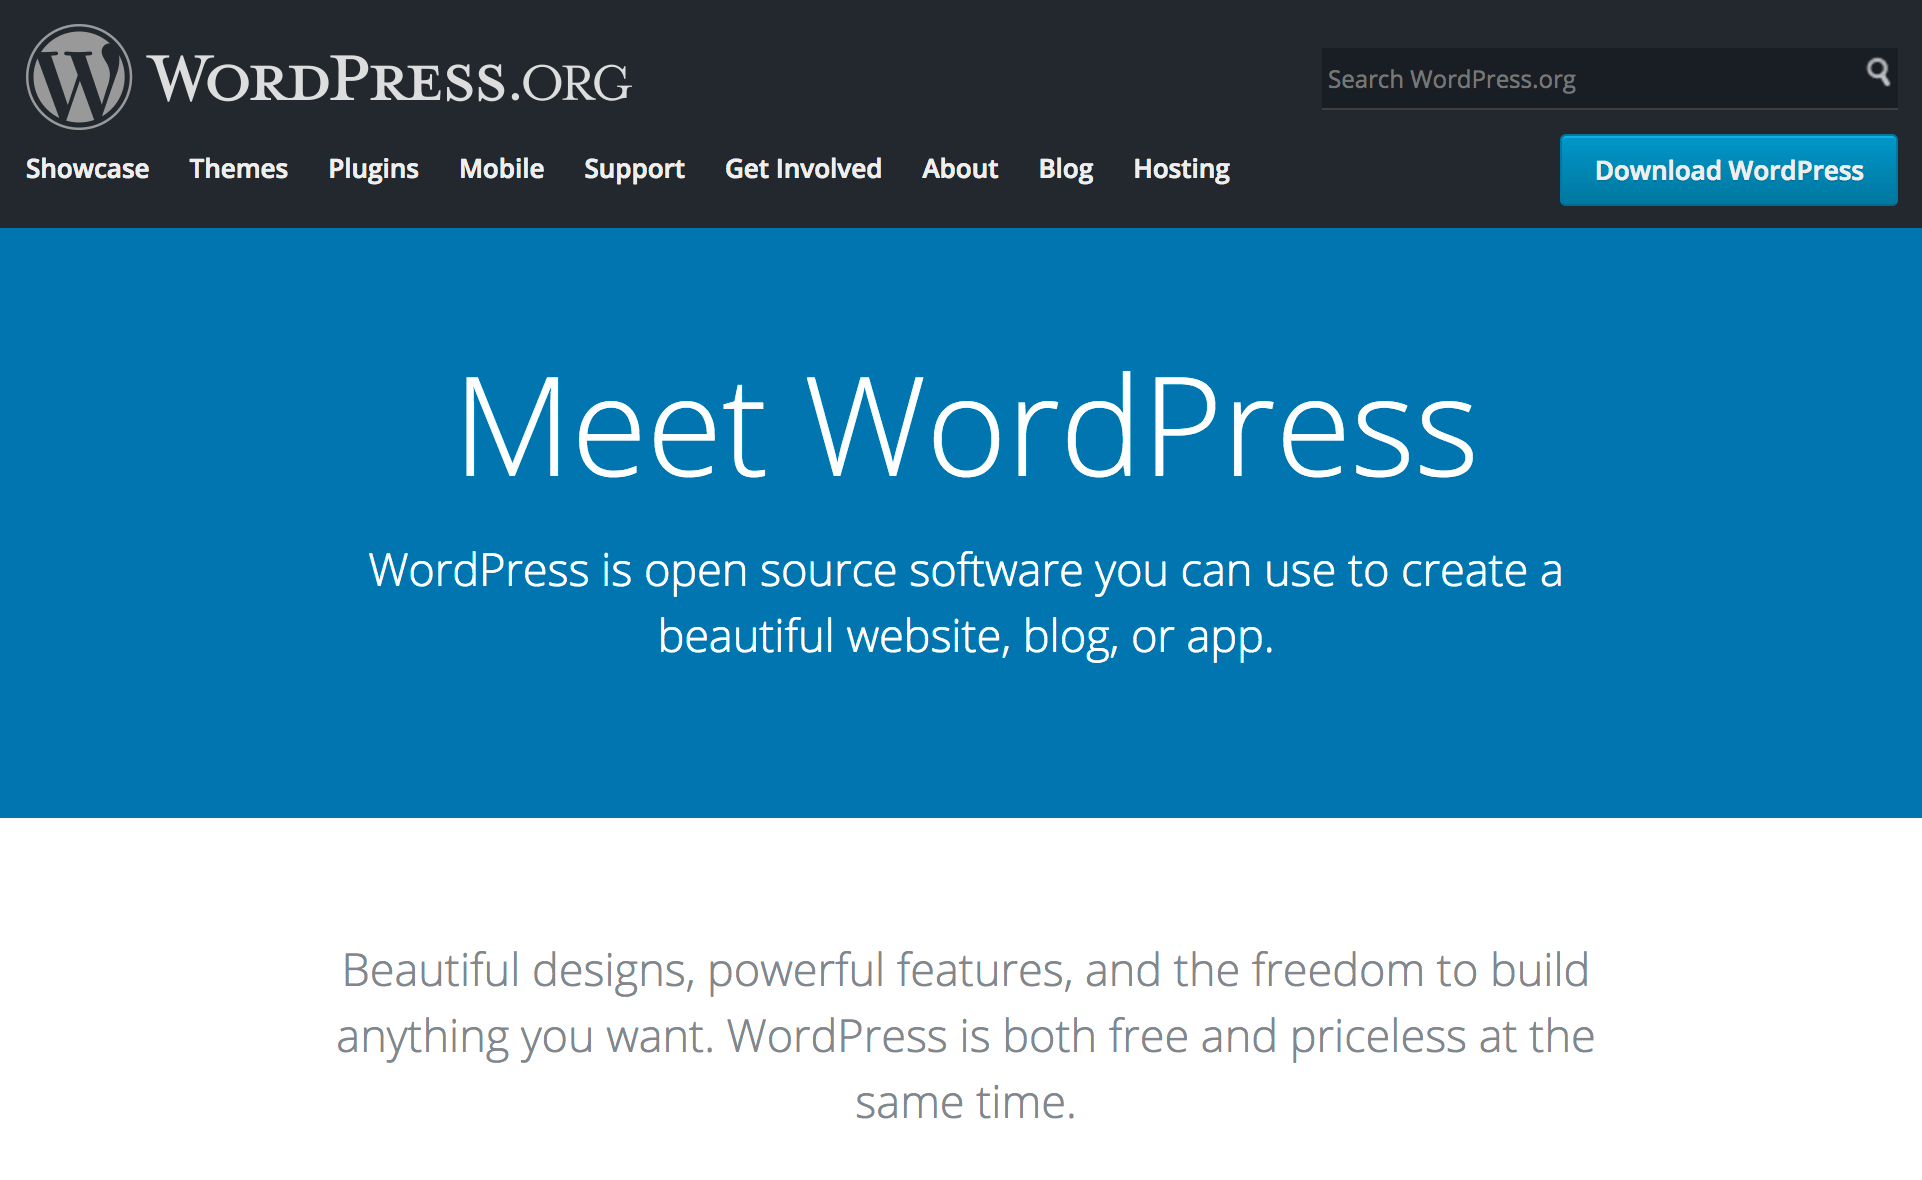 WordPress - a powerful platform to start a blog